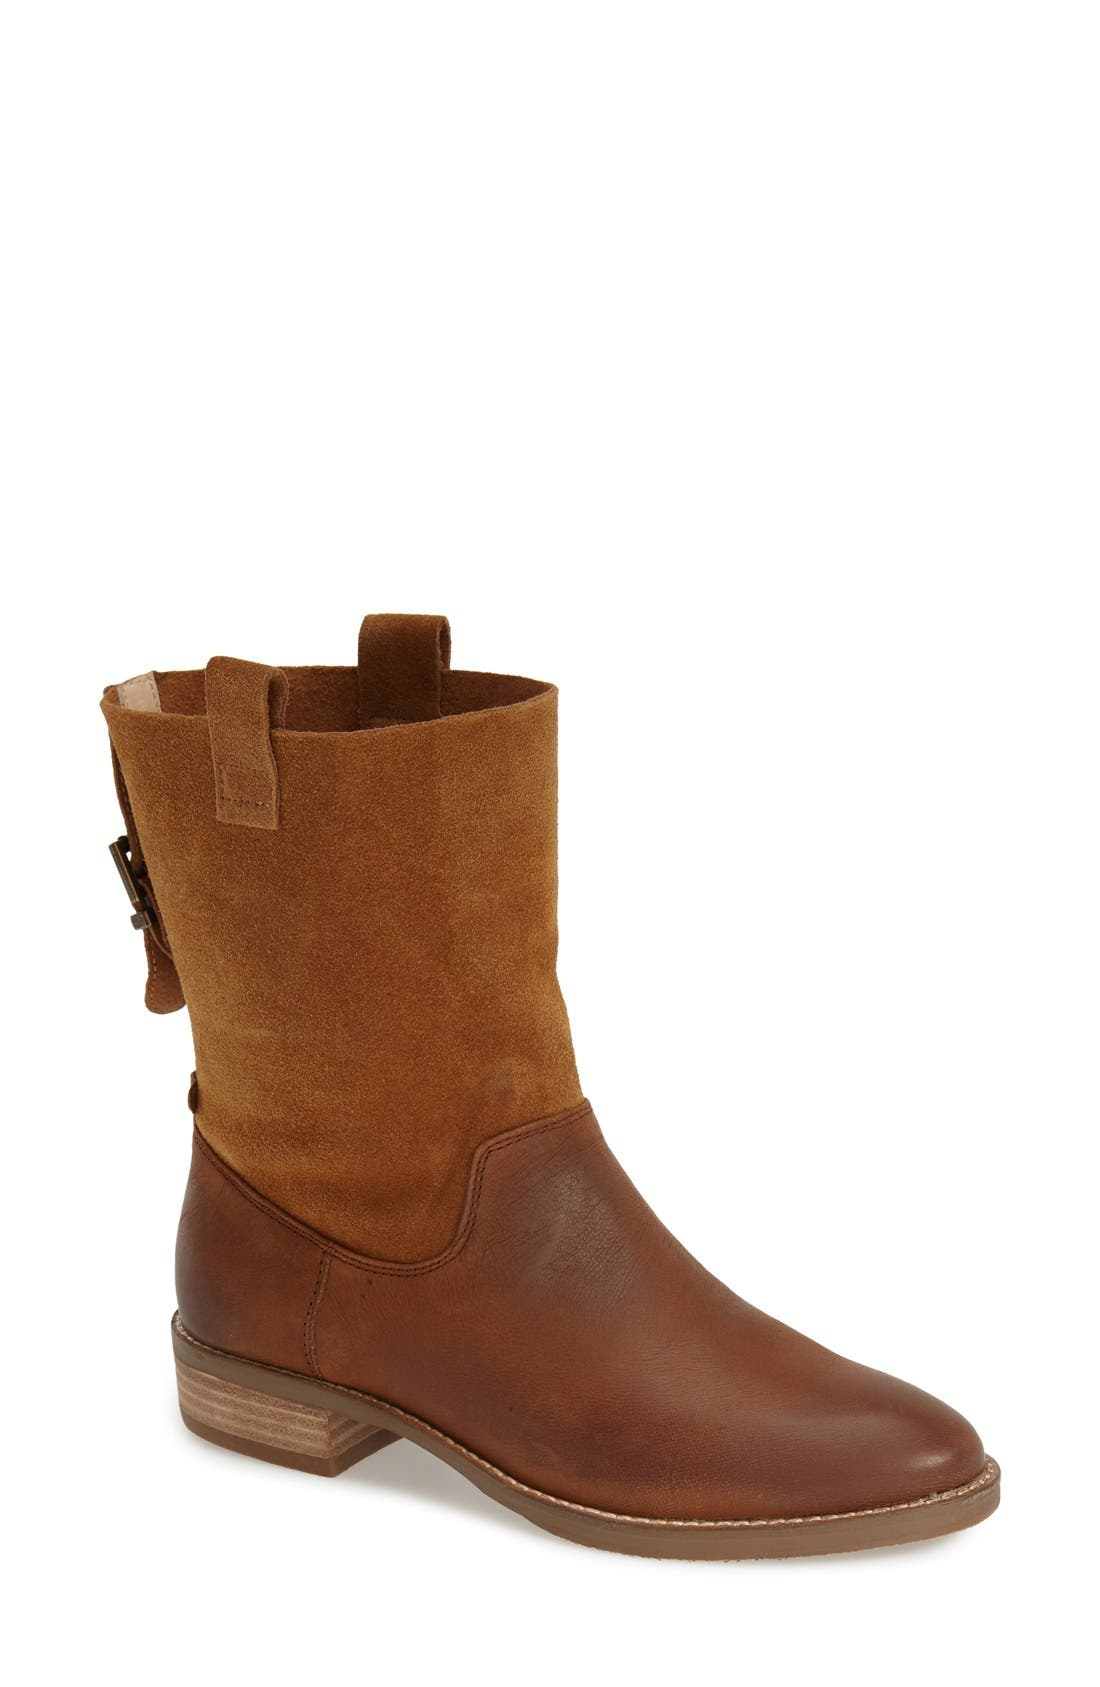 Alternate Image 1 Selected - Sole Society 'Jaclyn' Almond Toe Boot (Women)